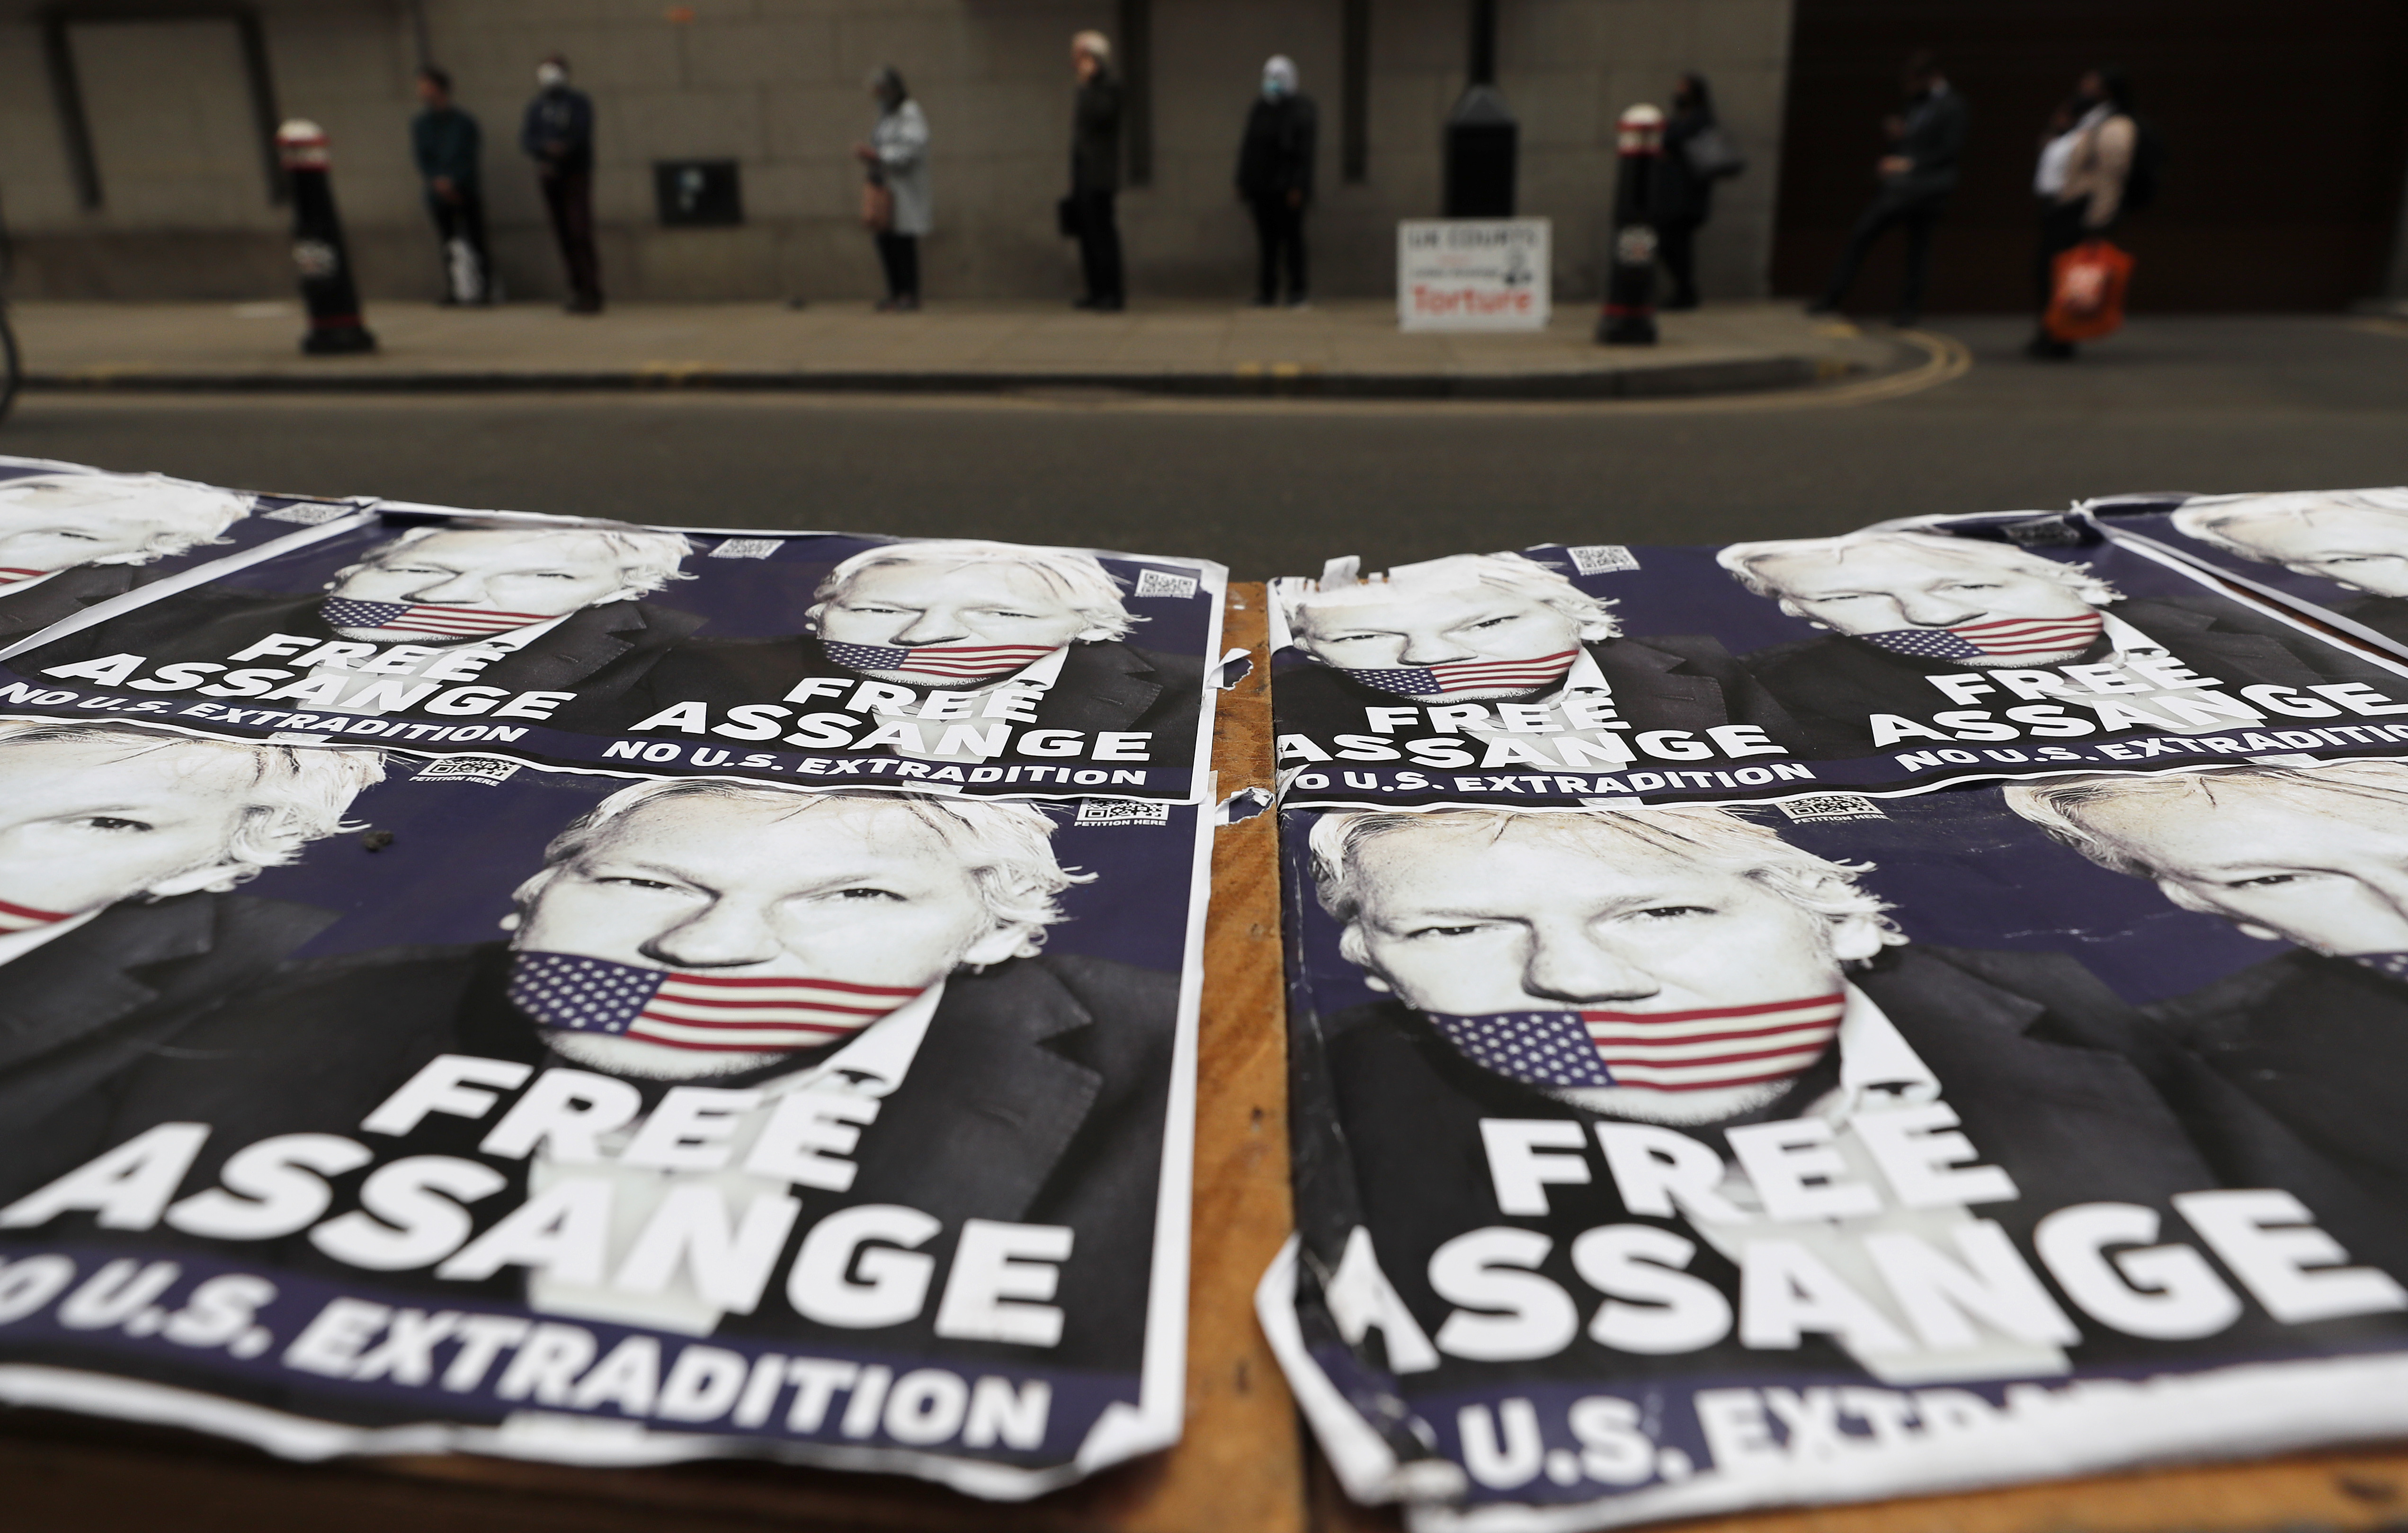 Expert: WikiLeaks Assange a suicide risk if extradited